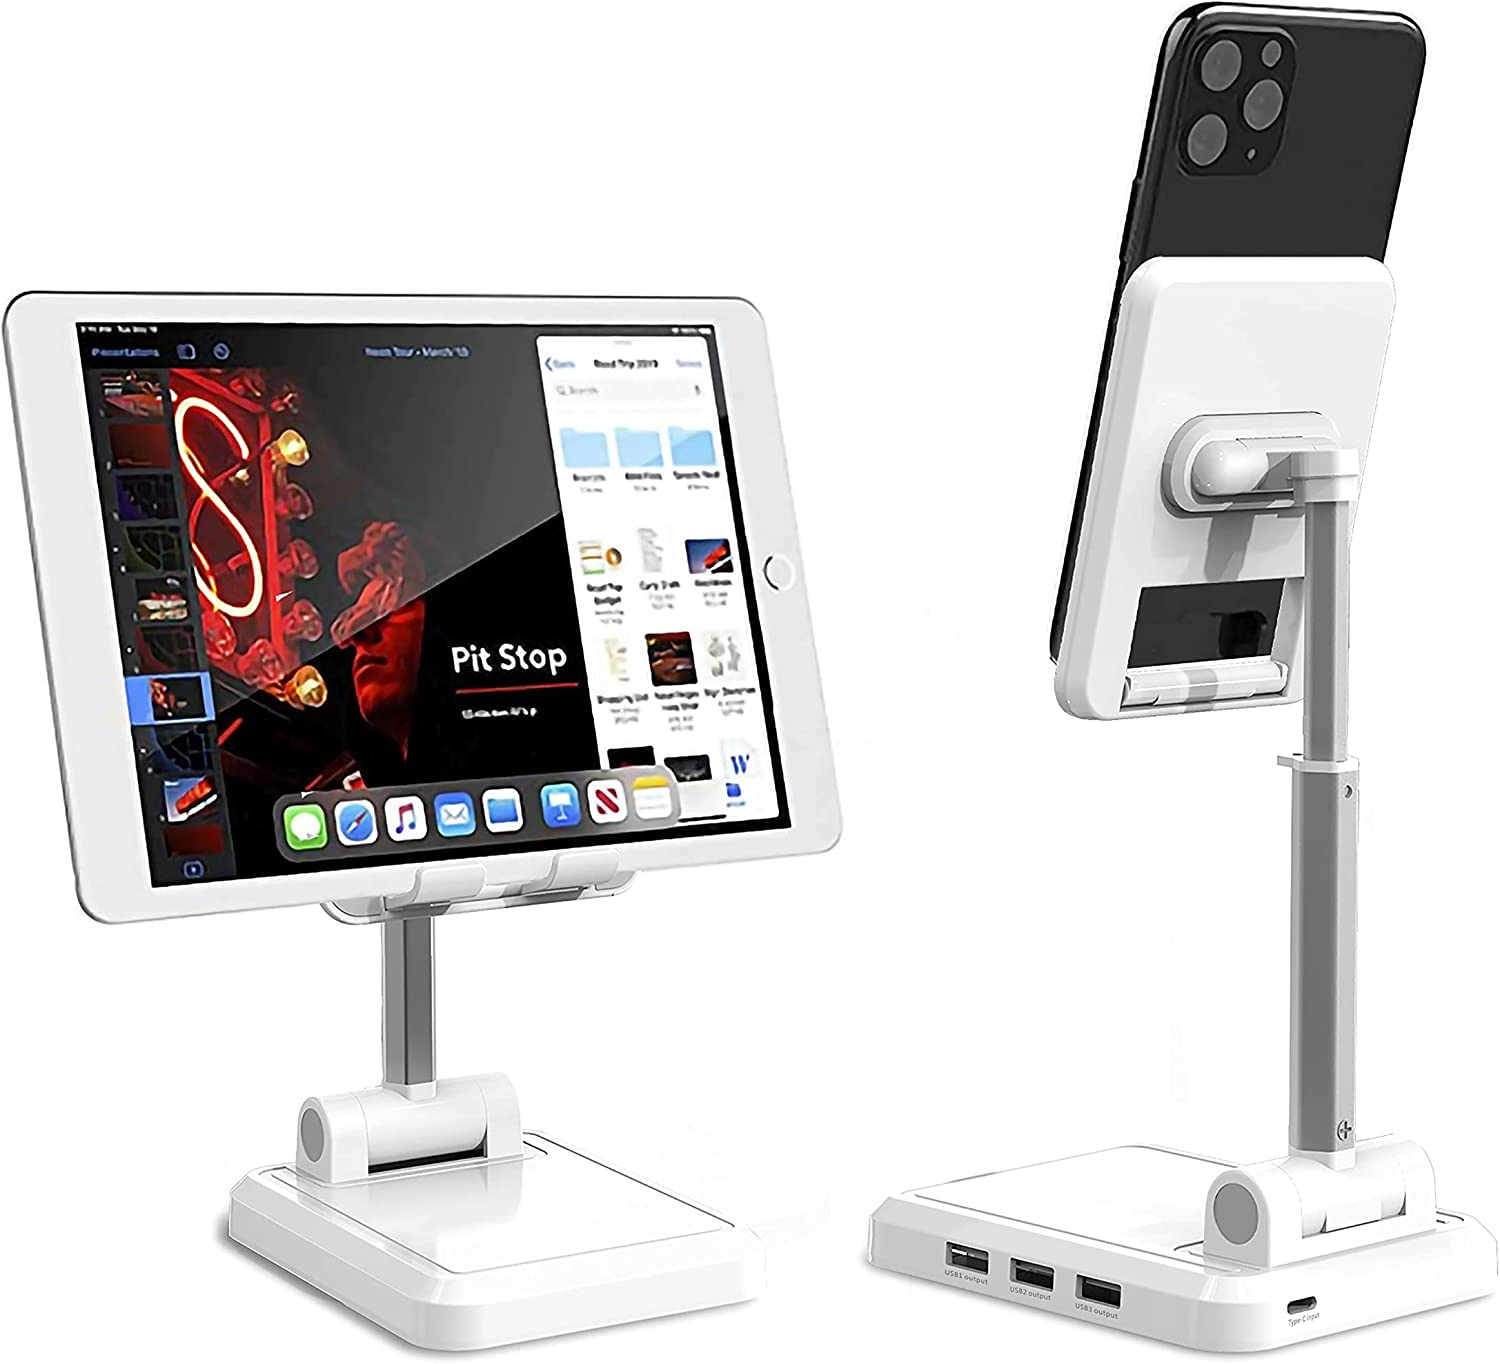 WATERNEST,Tablet Stand Adjustable,Phone Holder, Adjustable Angle Desktop Phone Holder, Mobile Phone Holder with USB Charging Ports, Suitable for iPhone, iPad, Tablet Computers